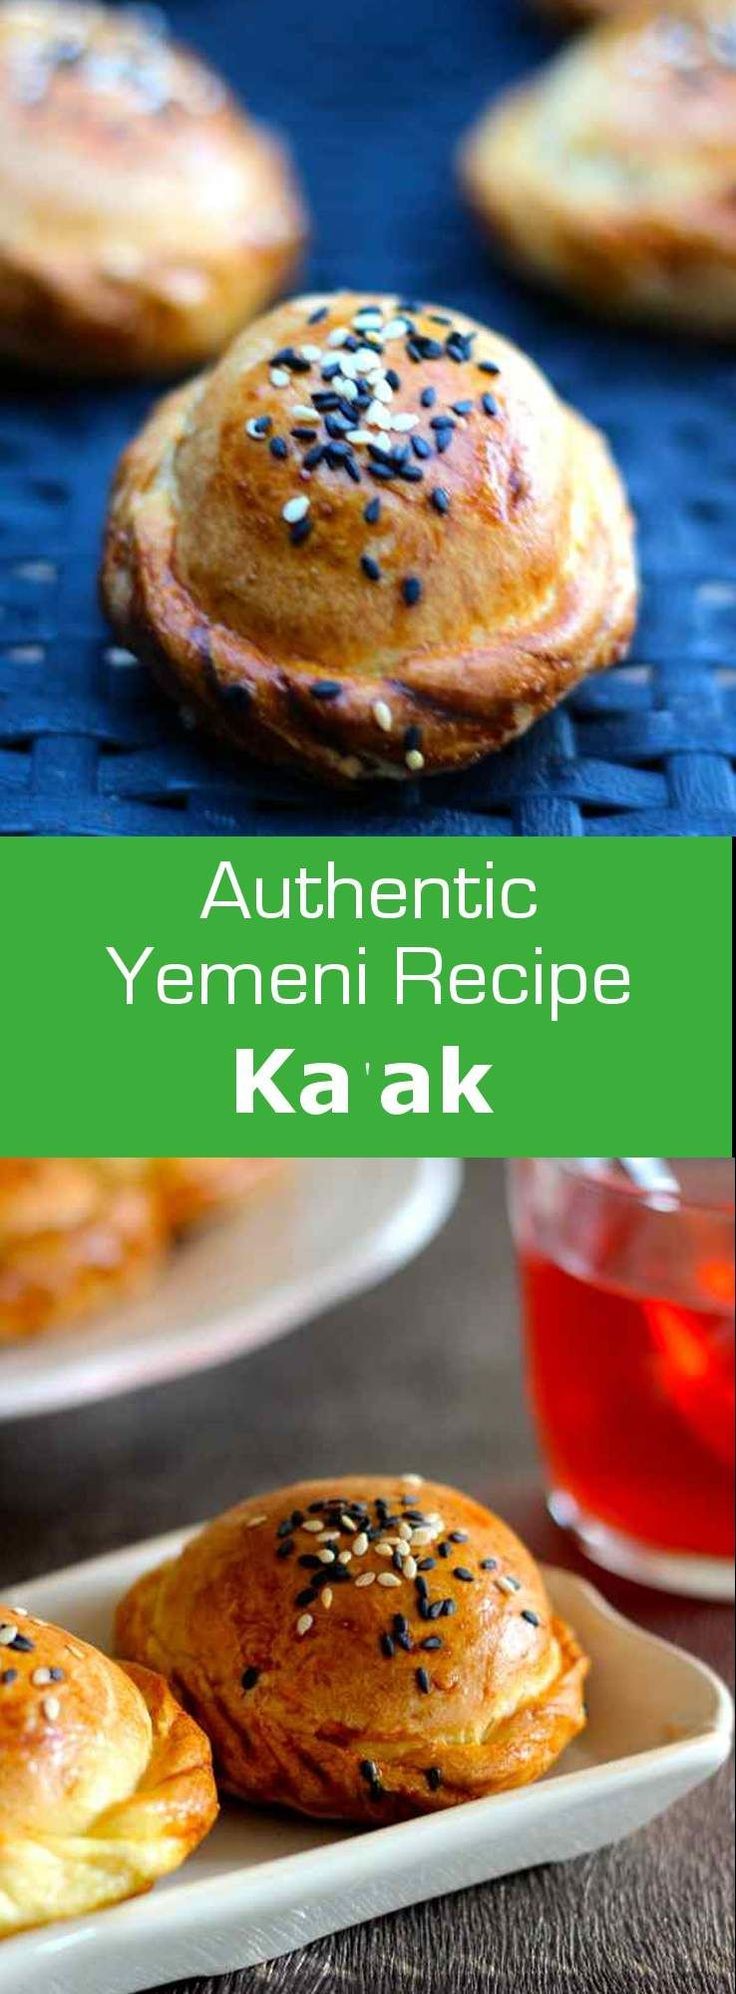 nutrition and traditional yemeni bread Often served with bread, these hearty dishes are cooked in stone pots and may feature lamb a yemeni garlic chilli paste – is best served with hummus and flatbread.